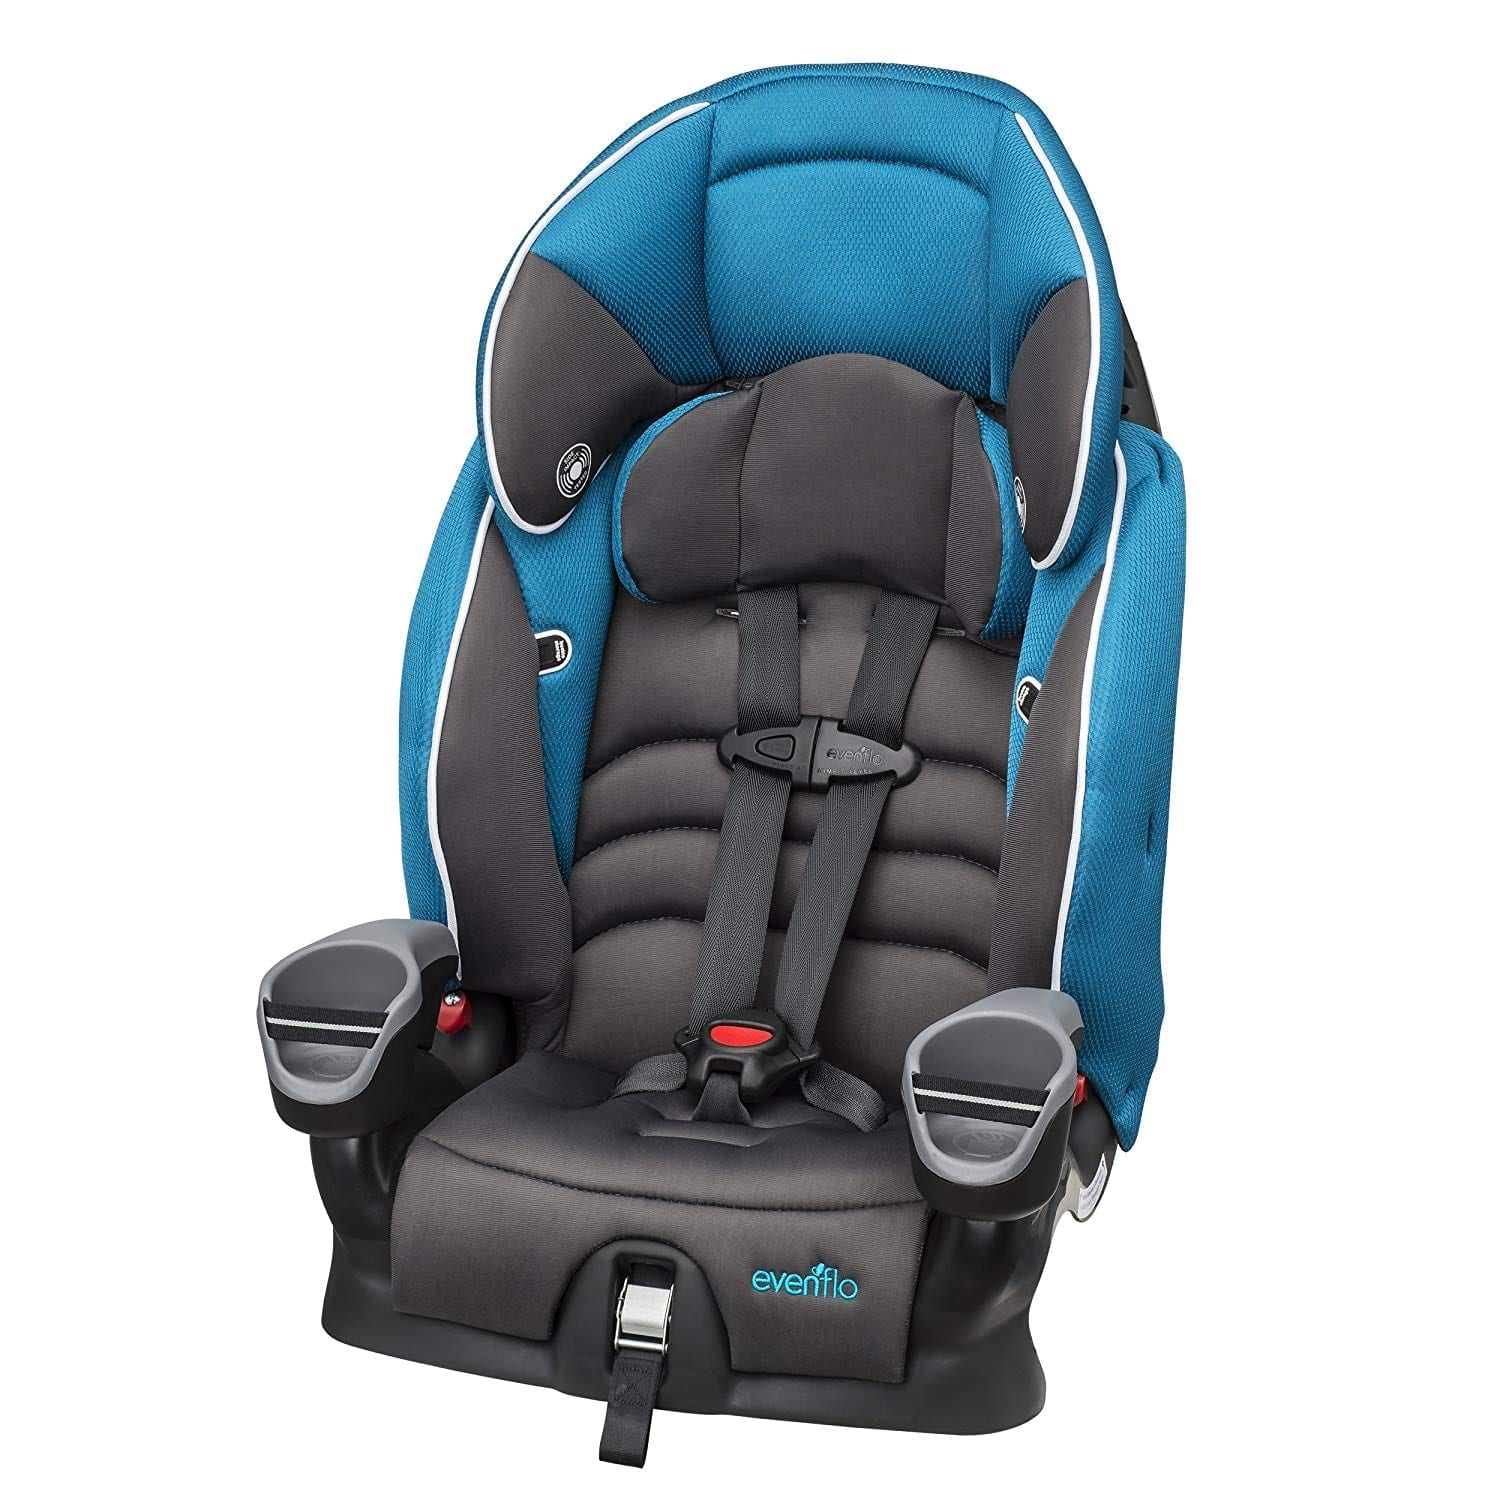 Evenflo Maestro Thunder Booster Car Seat